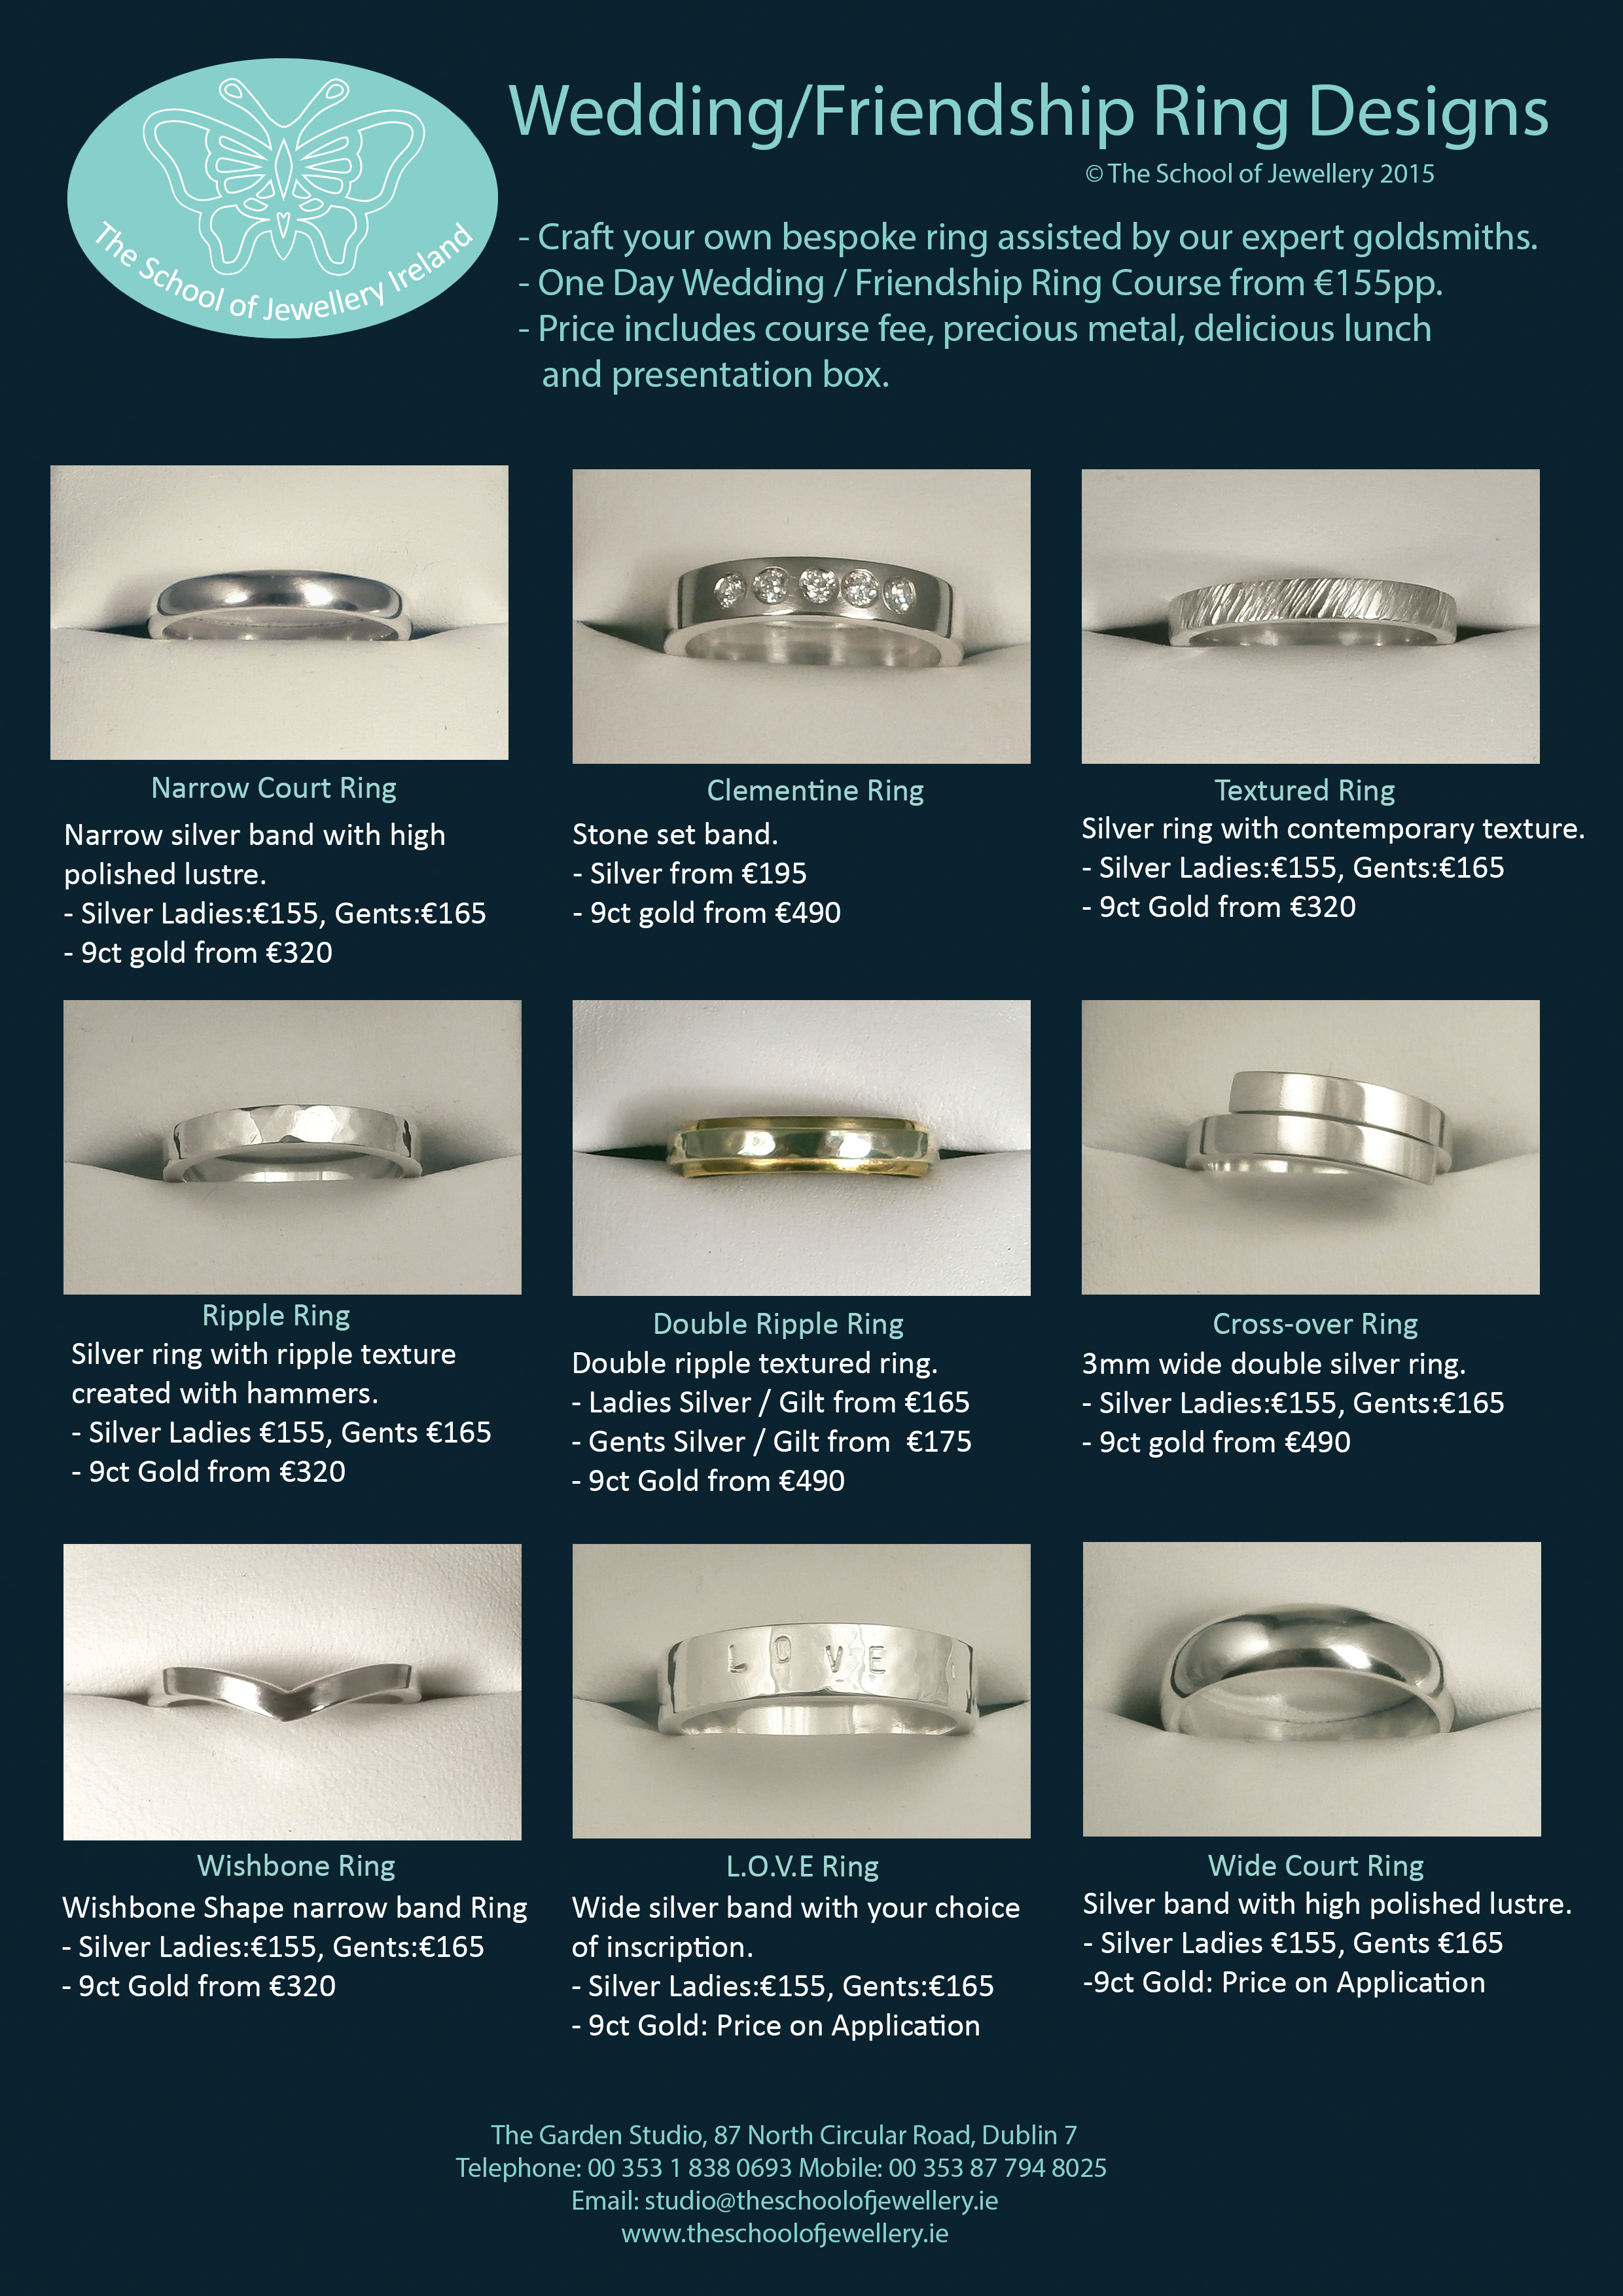 The school of jewellery ireland see our wedding ring design brochure click here to view our one day ring course gallery if you have a particular design in mind please feel free to junglespirit Images